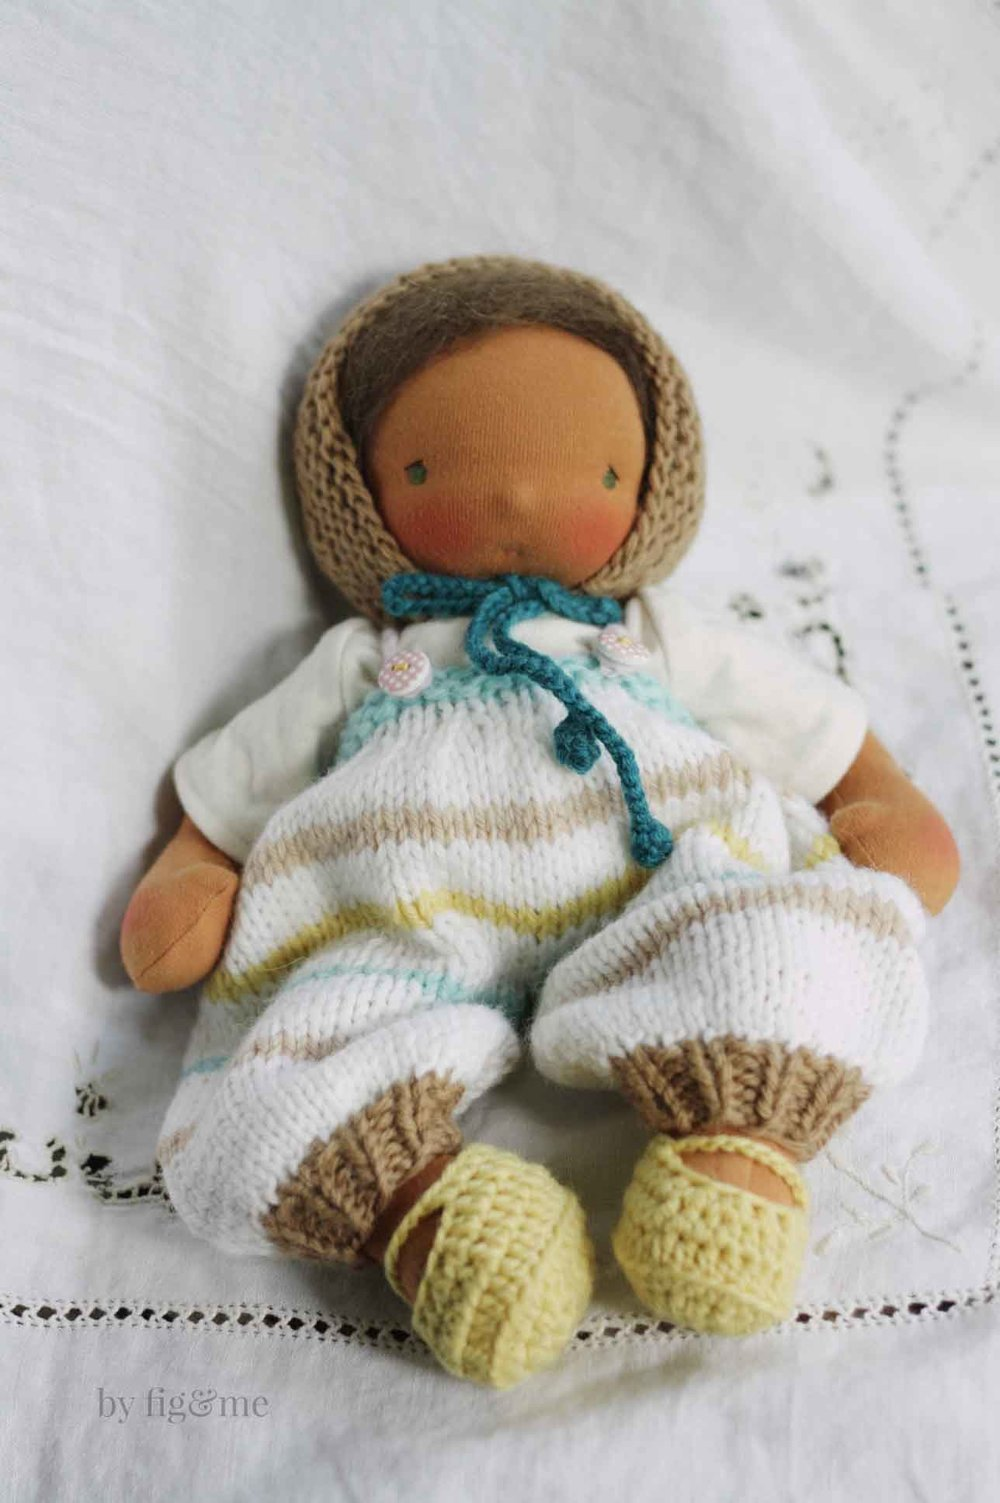 Balloon knitted overalls for your baby doll. Knitting pattern available from Fig and Me.